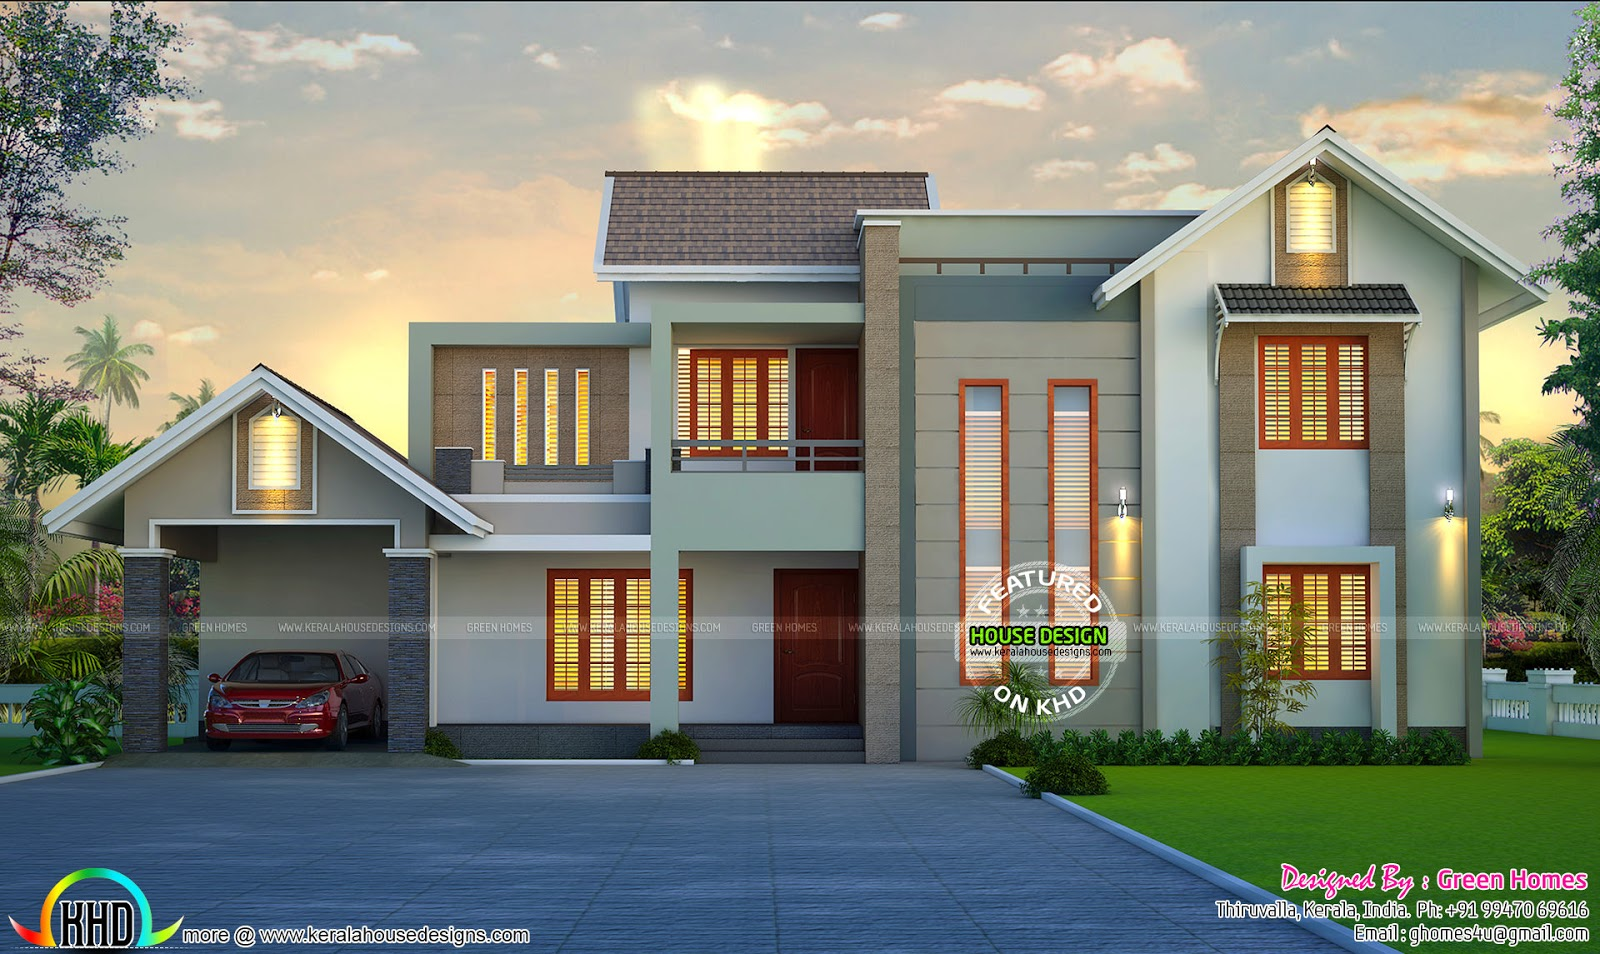 Beautiful home design by Green Homes Thiruvalla Kerala